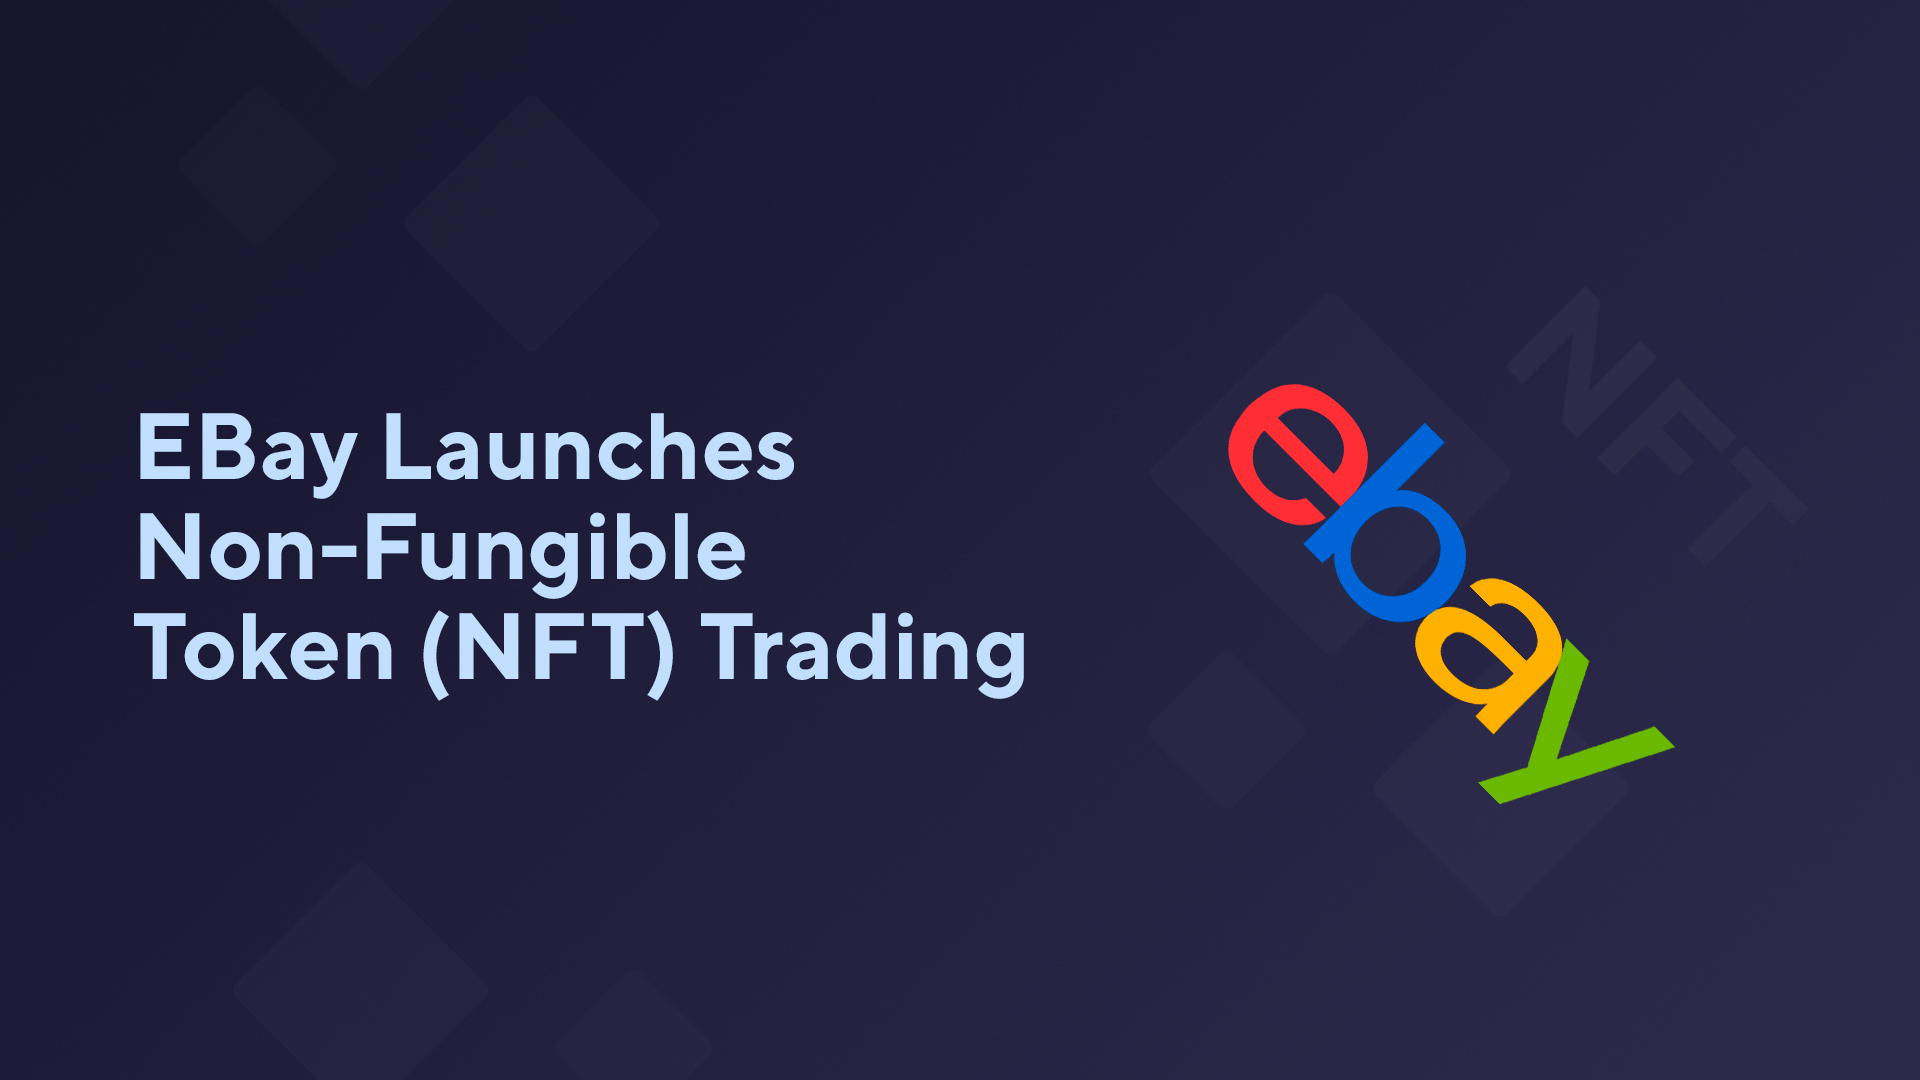 EBay Launches Non-Fungible Token (NFT) Trading